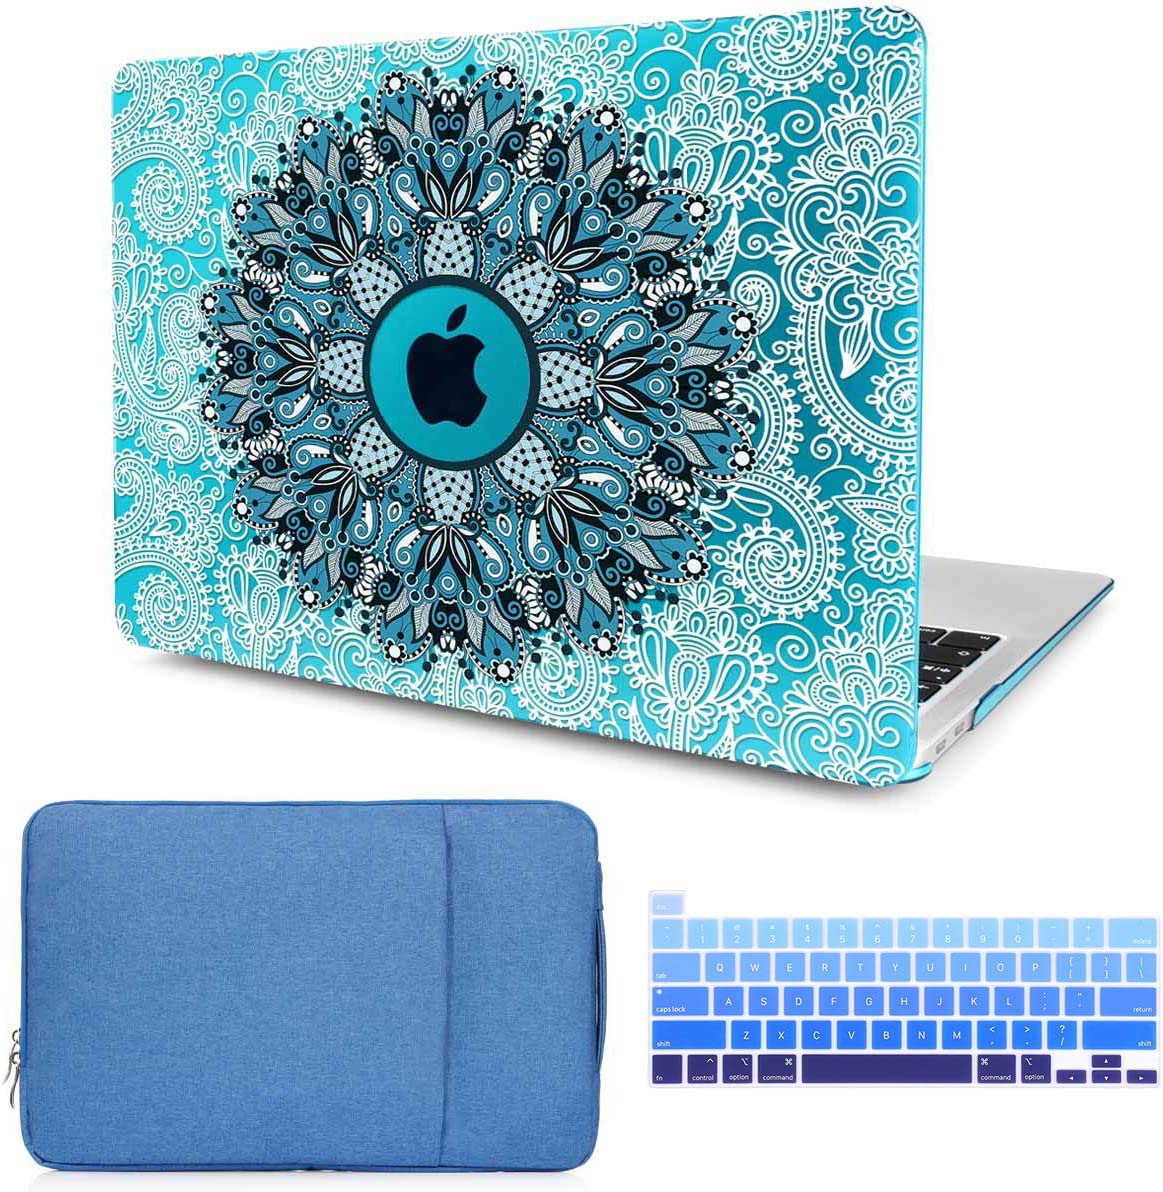 CiSoo MacBook Air 13 Inch Case Plastic Hard Shell Cover with Keyboard Cover and Laptop Sleeve for 2020 New MacBook Air 13 with Touch ID Model A2179, 3 in 1 Bundle